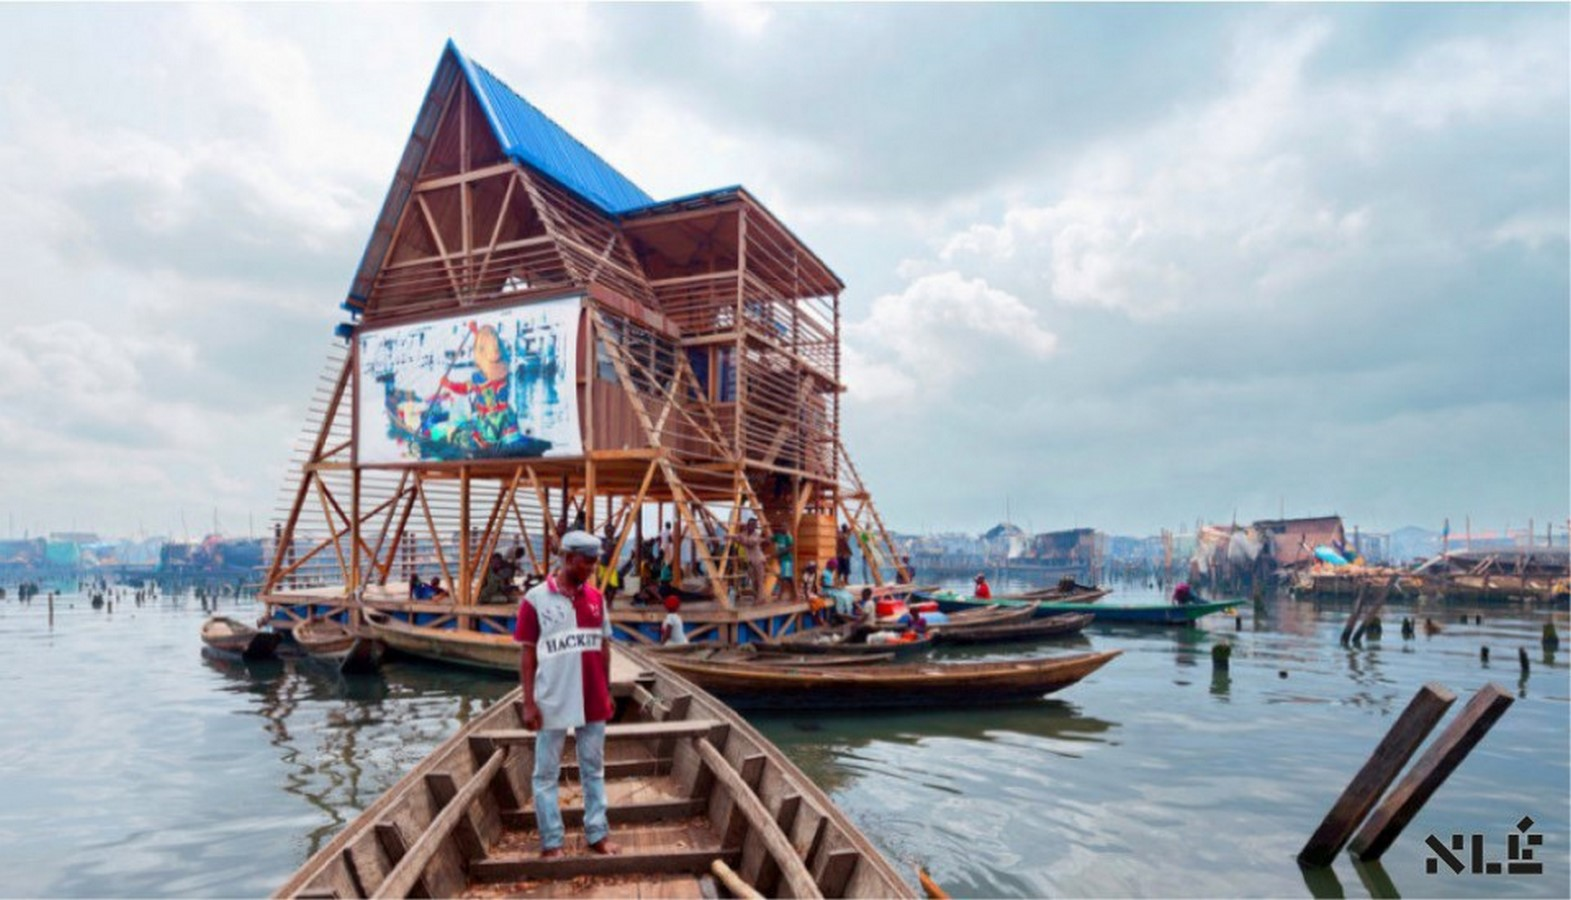 10 must see structures in Nigeria Sheet1